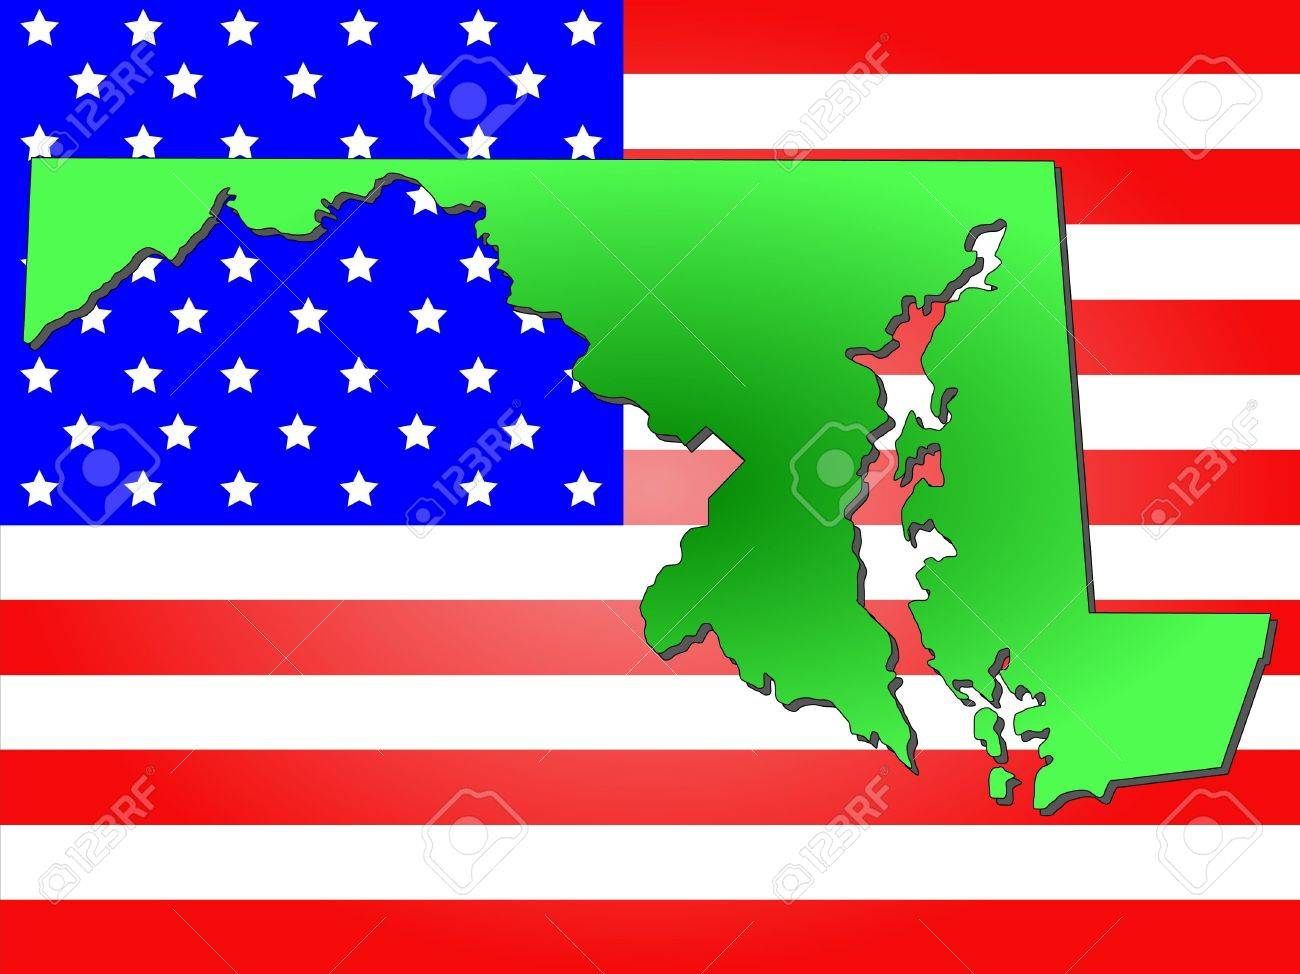 FileMap Of USA MDsvg Wikimedia Commons Silhouette And Colored - Maryland map usa